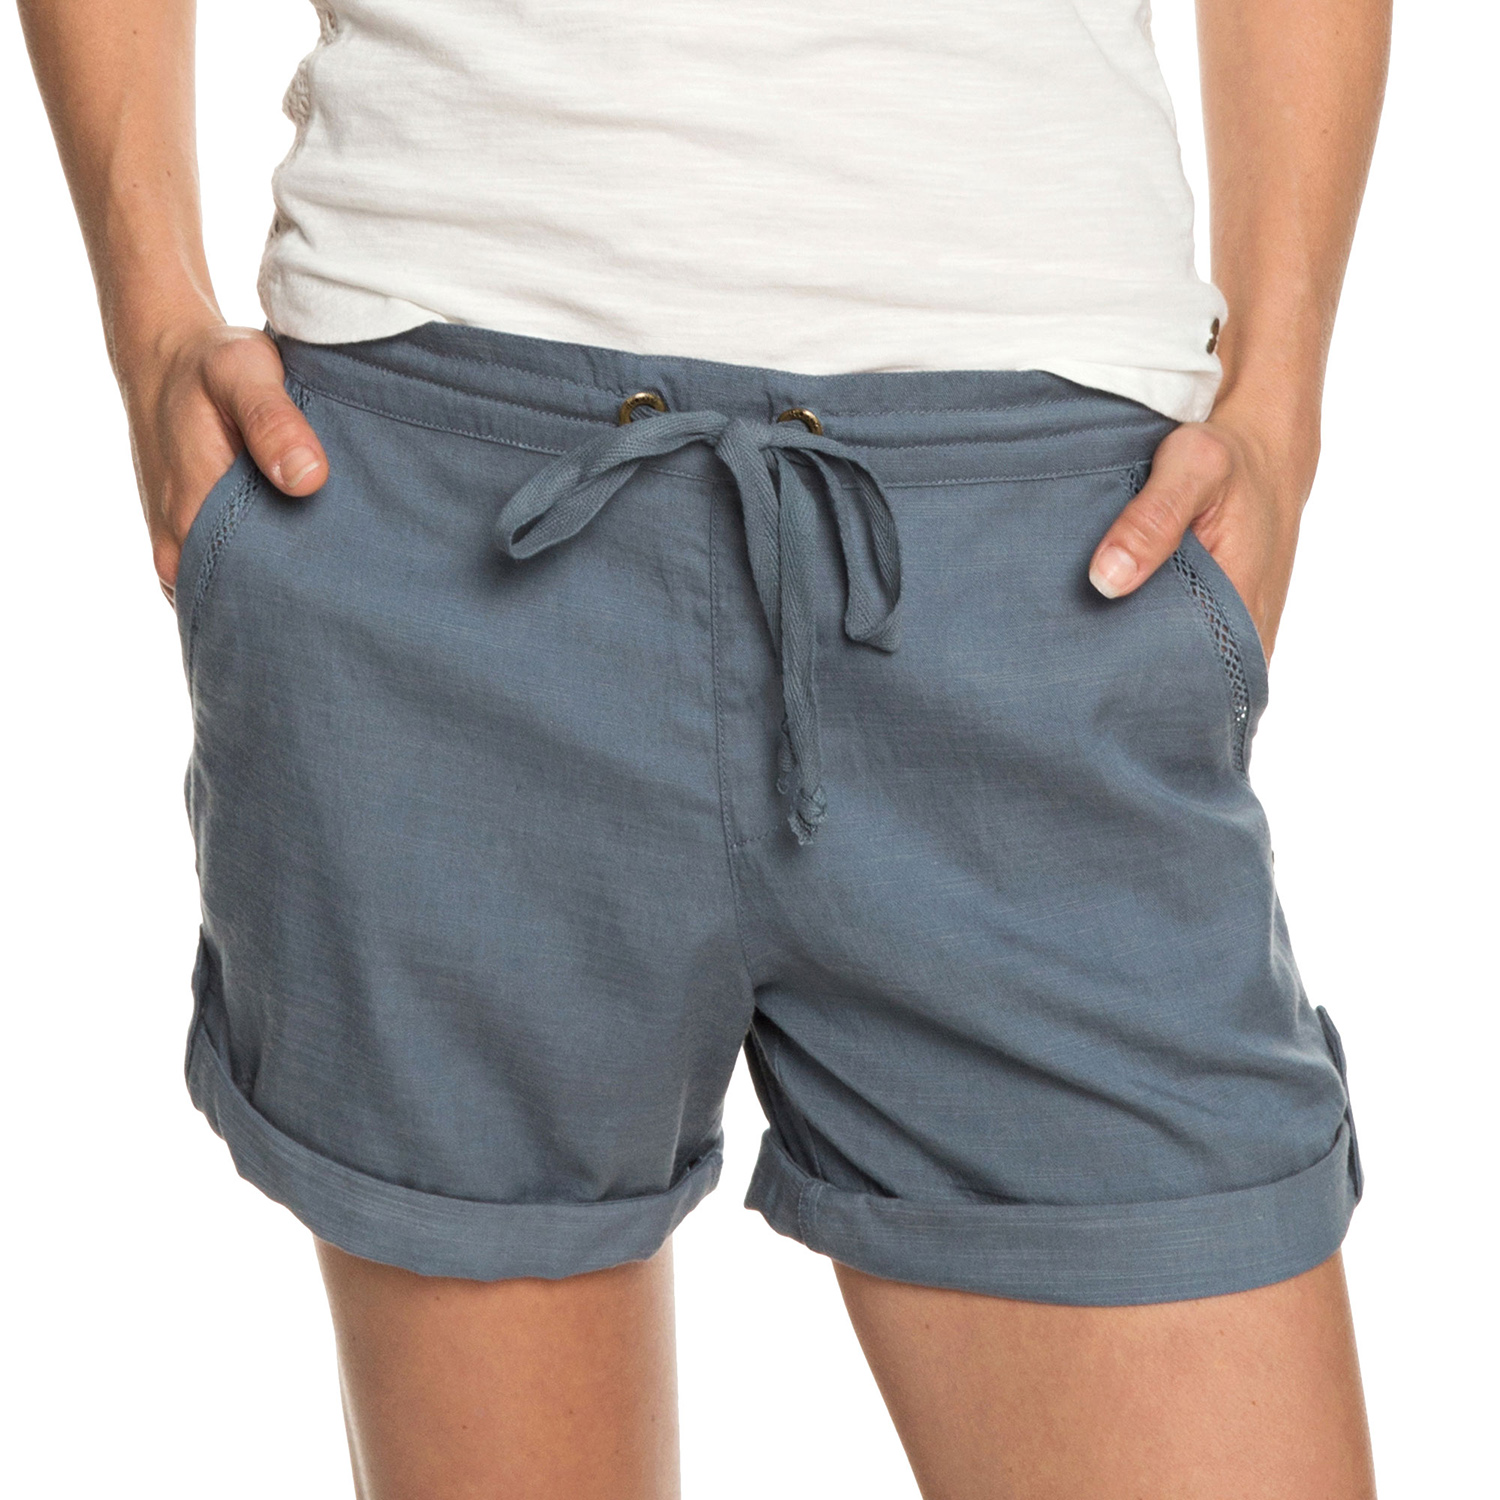 Roxy Womens Love at Two Short